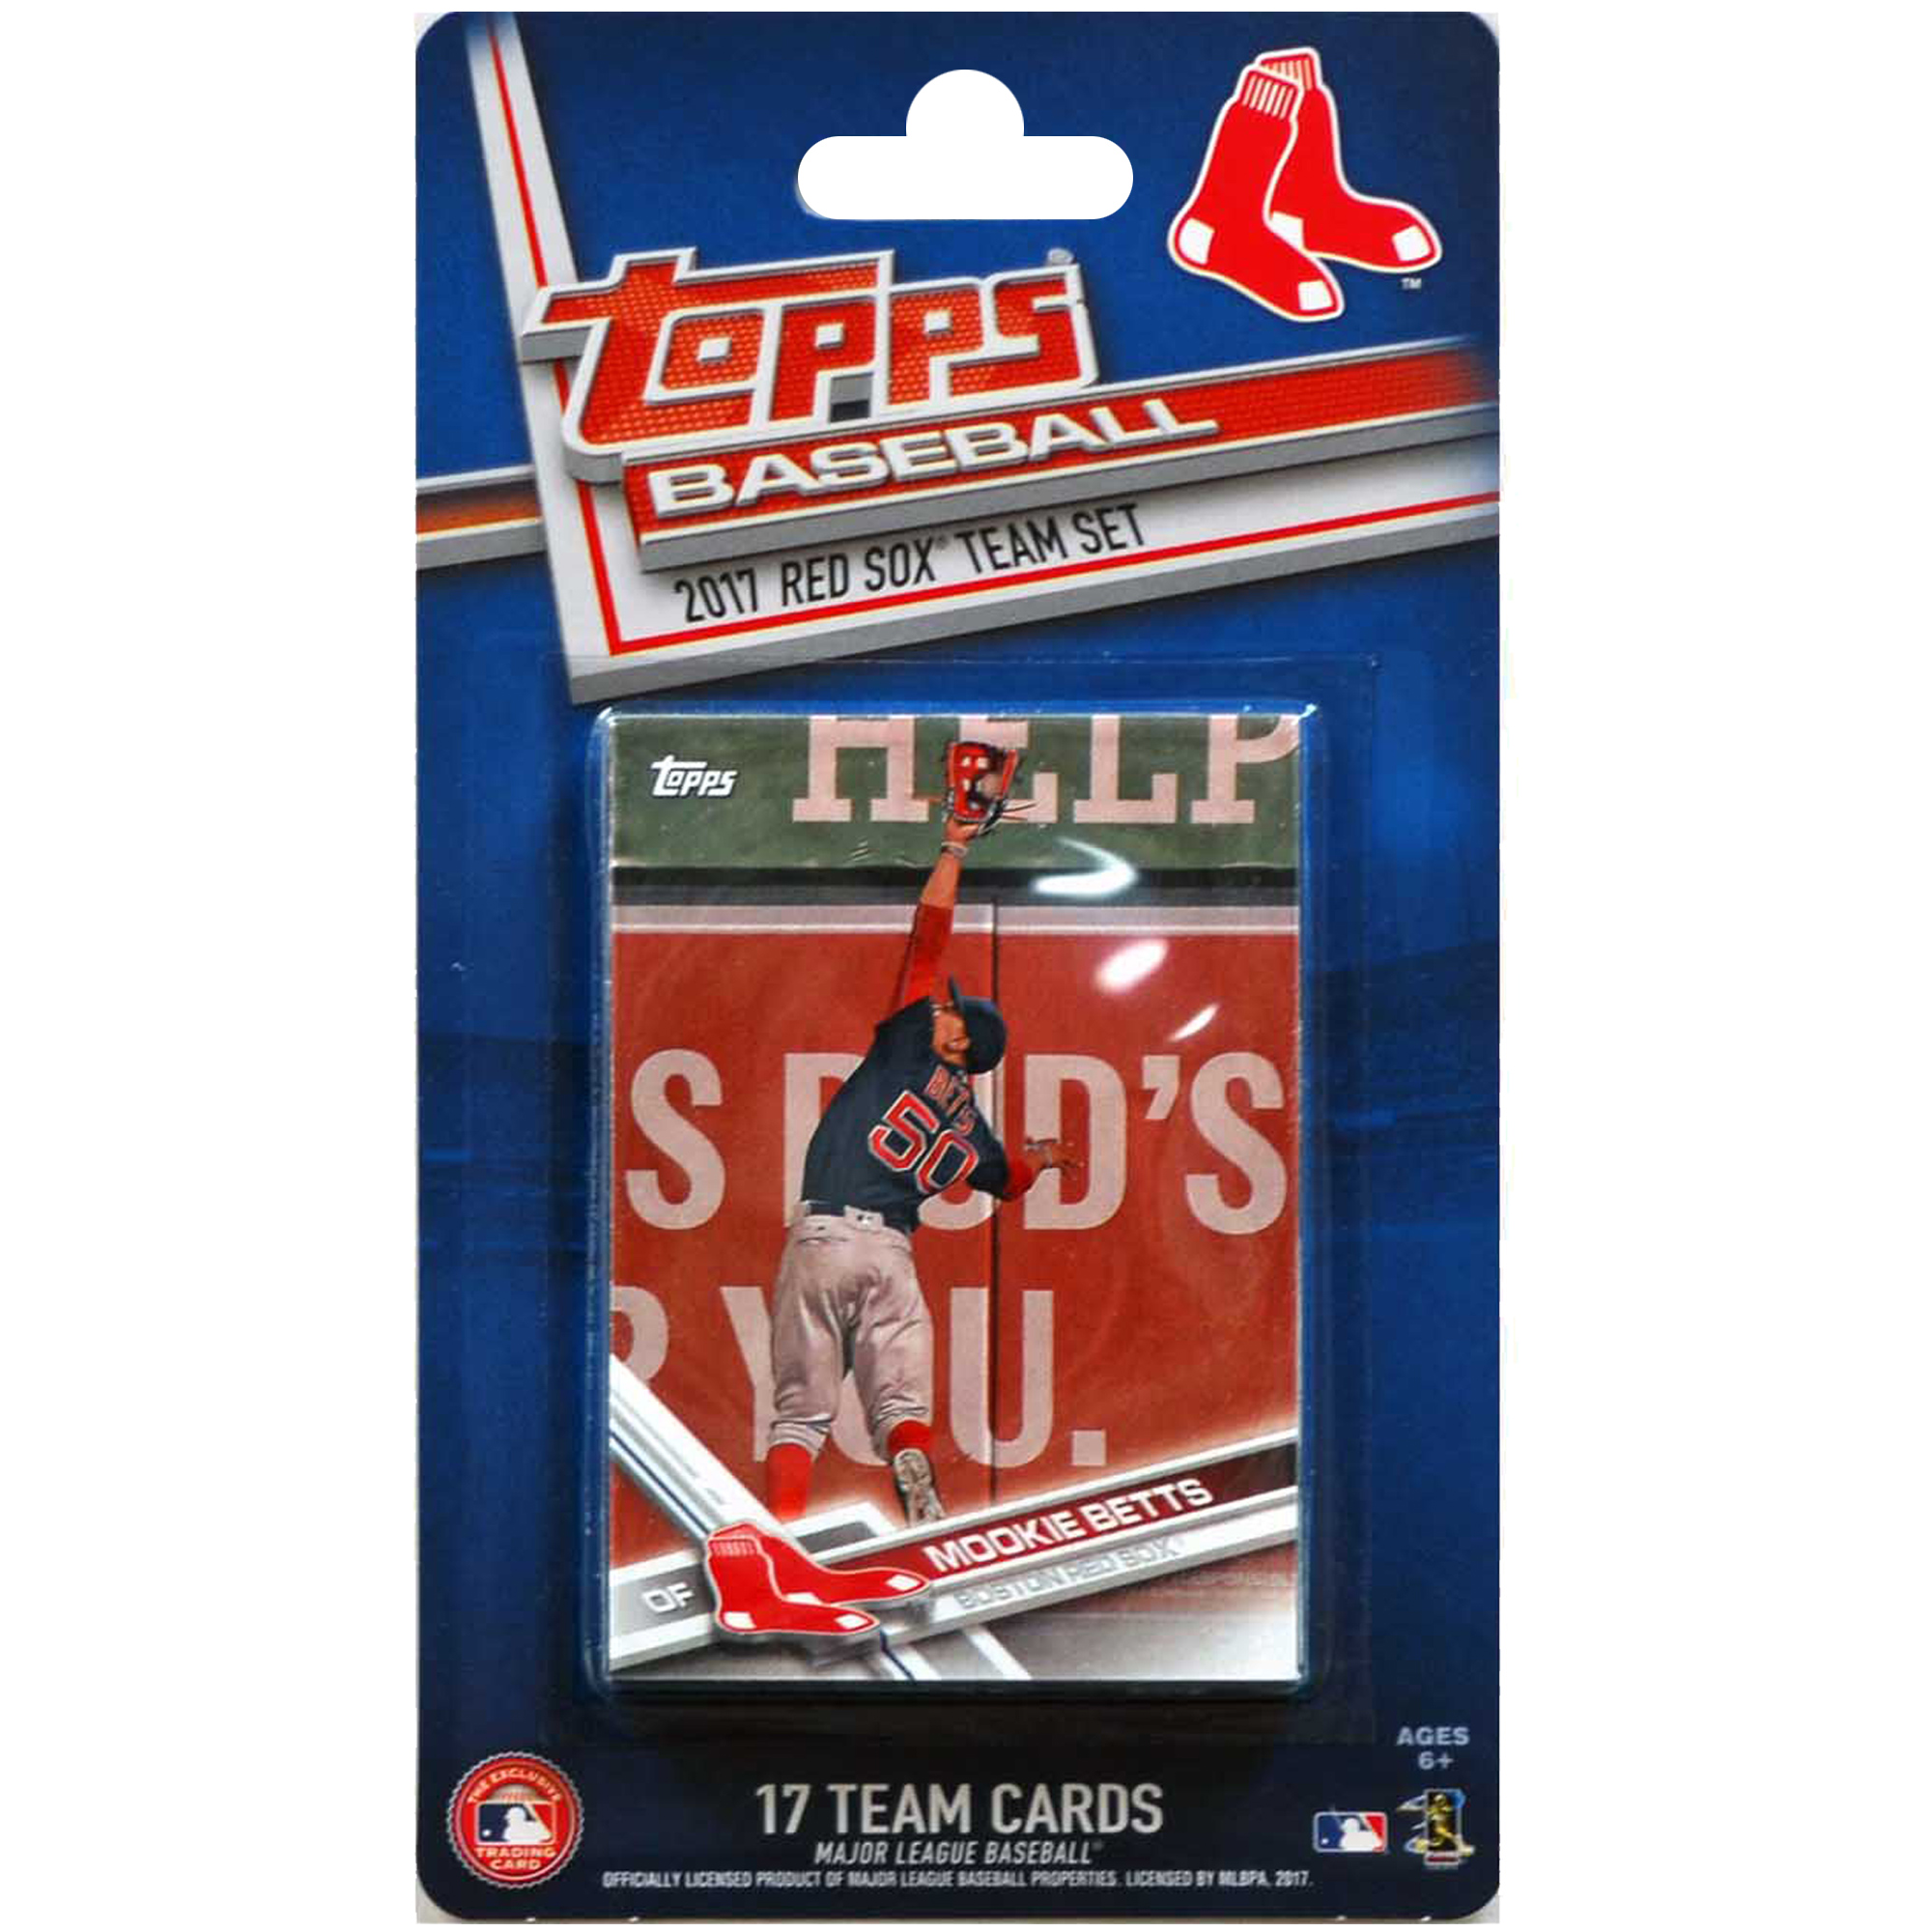 Boston Red Sox 2016/17 Team Set Baseball Trading Cards - No Size